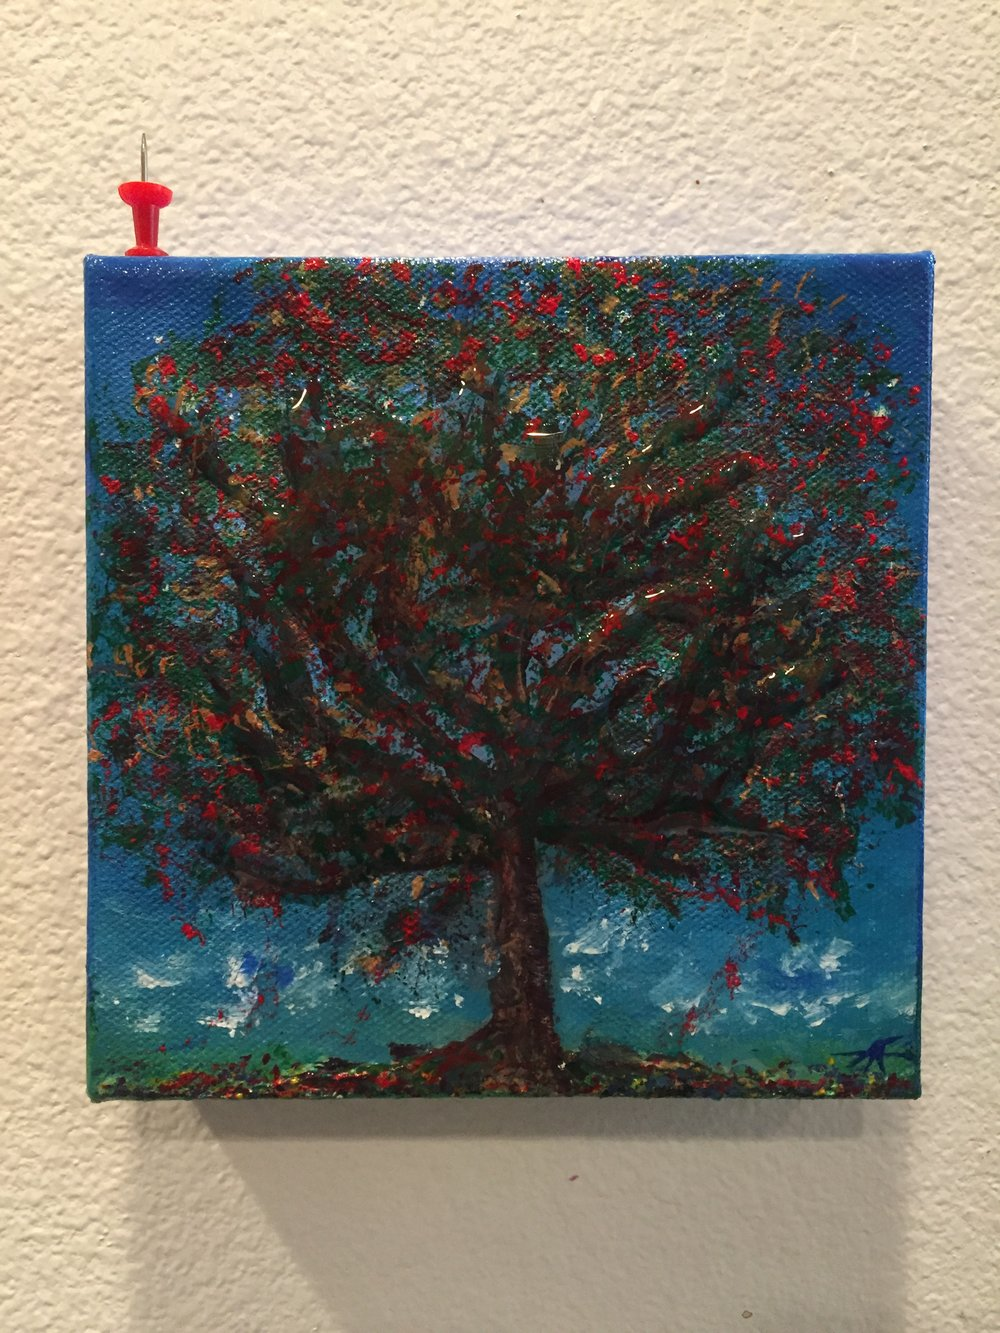 "TREE OF LIFE 2019 (6"" X 6"" RESIN ENHANCED)"